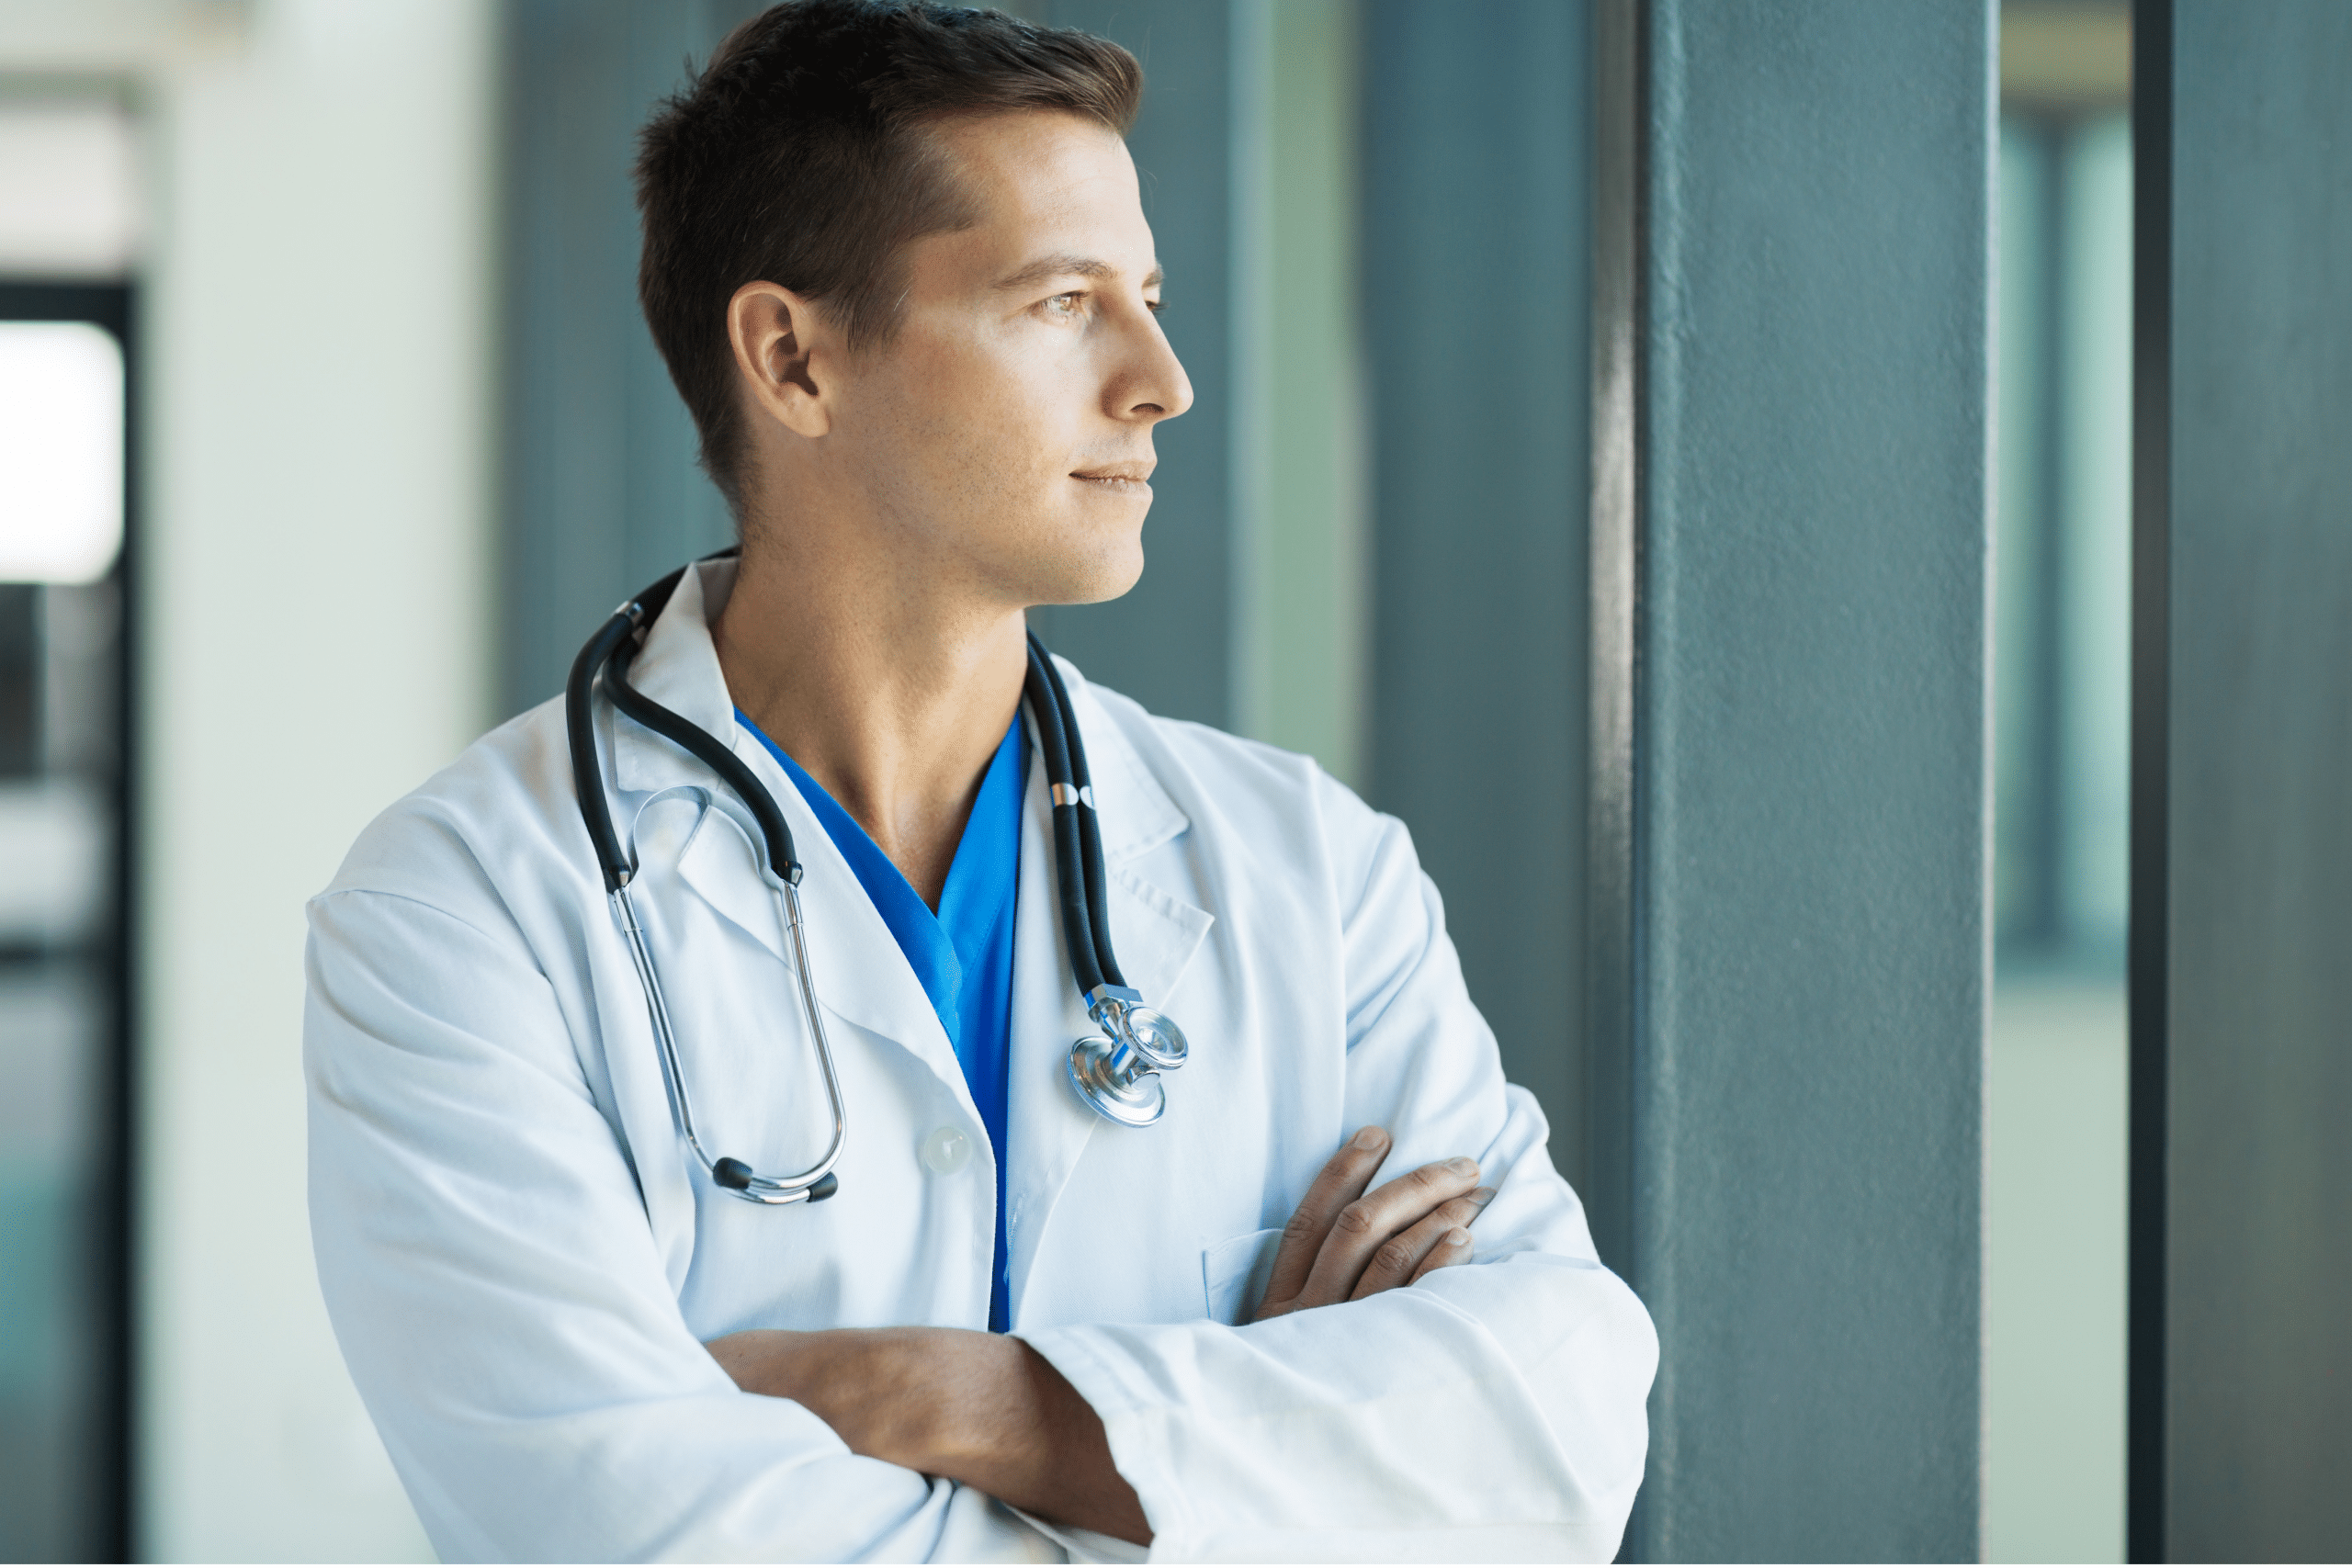 How to Find a Doctor After a Car Accident   Accident Help Zone